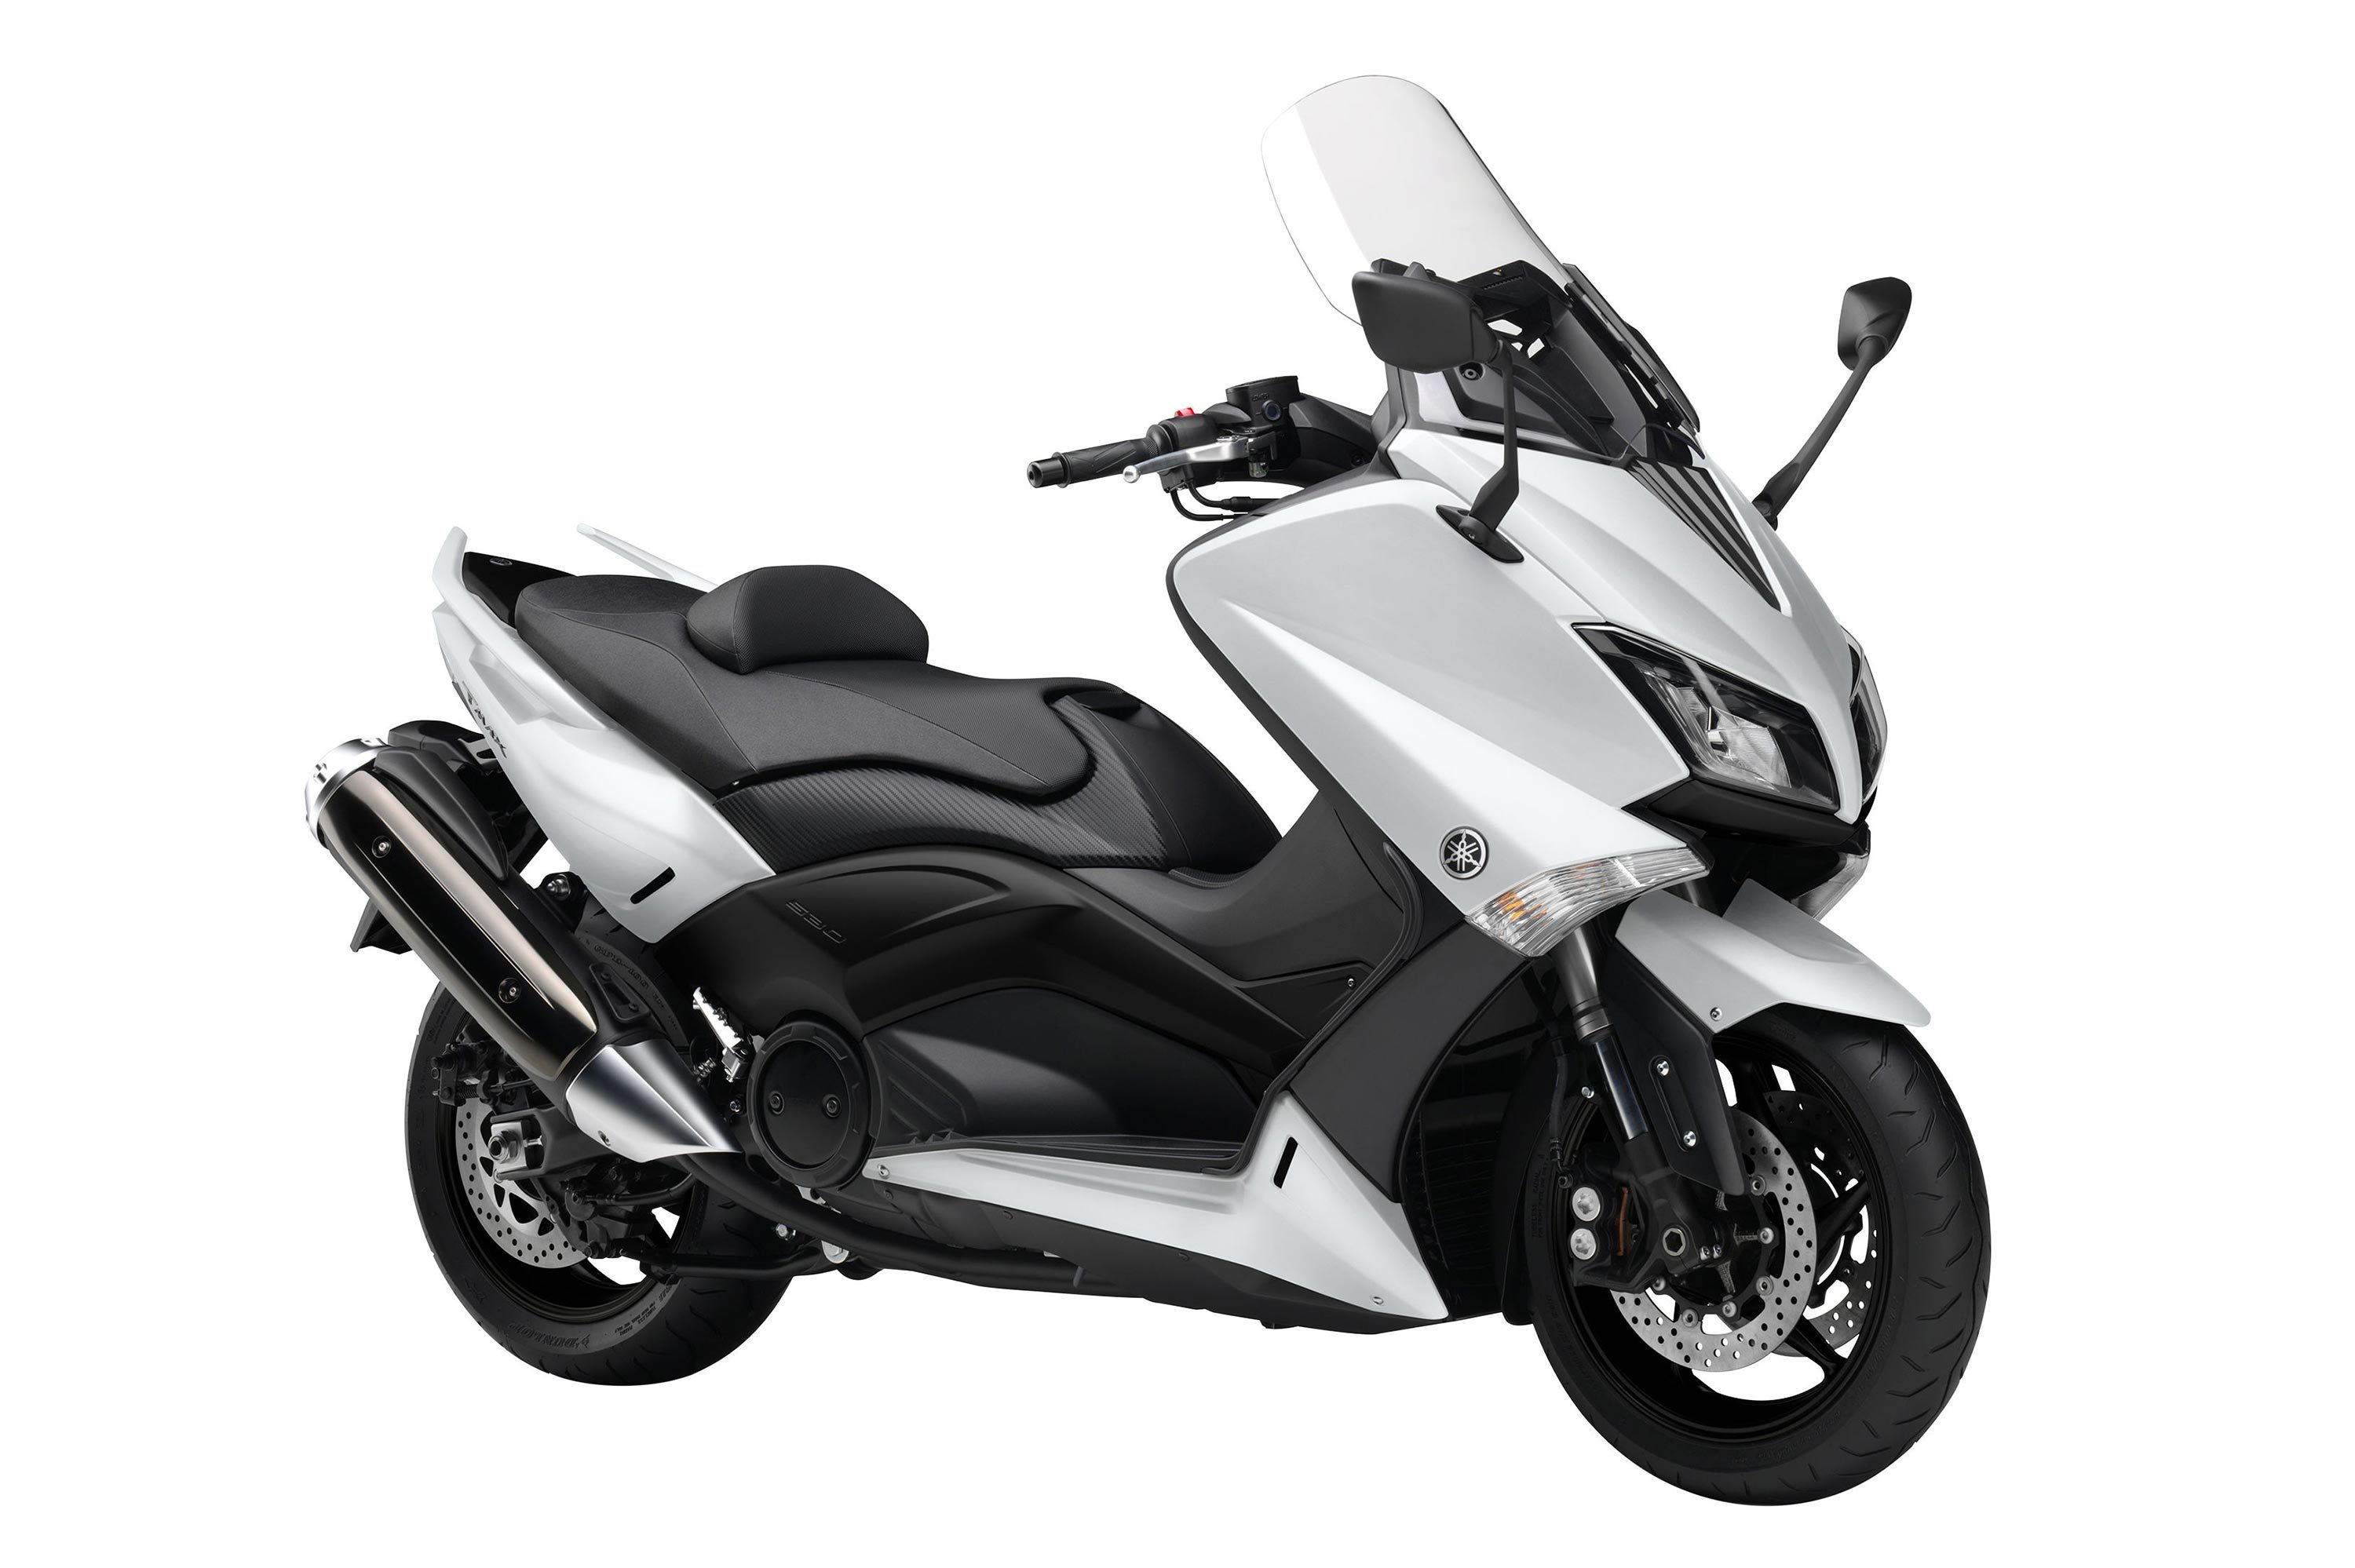 Yamaha t-max photo - 4